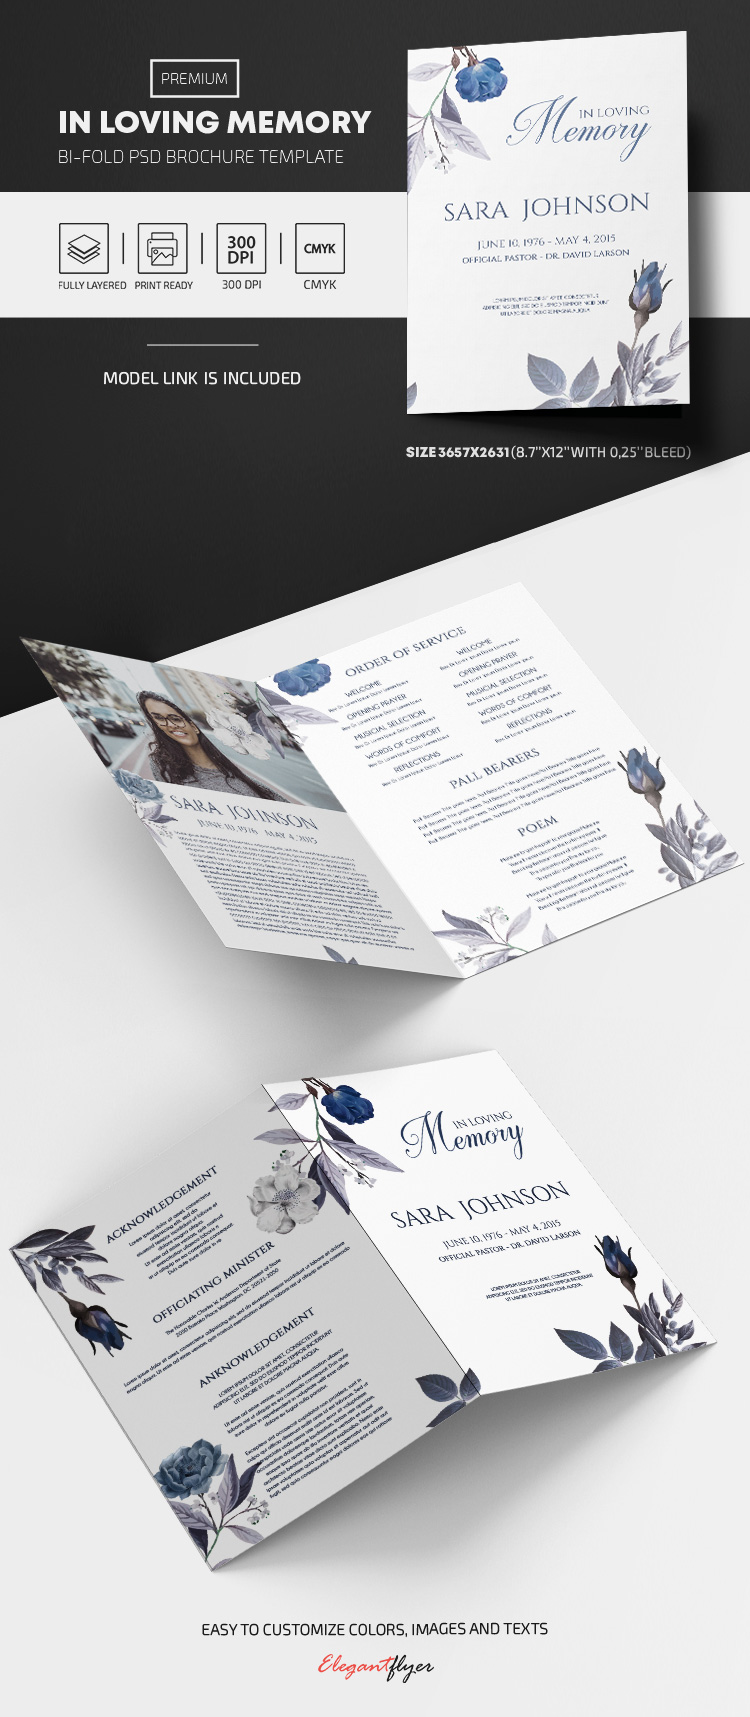 In Loving Memory – PSD Bi-Fold Brochure Template